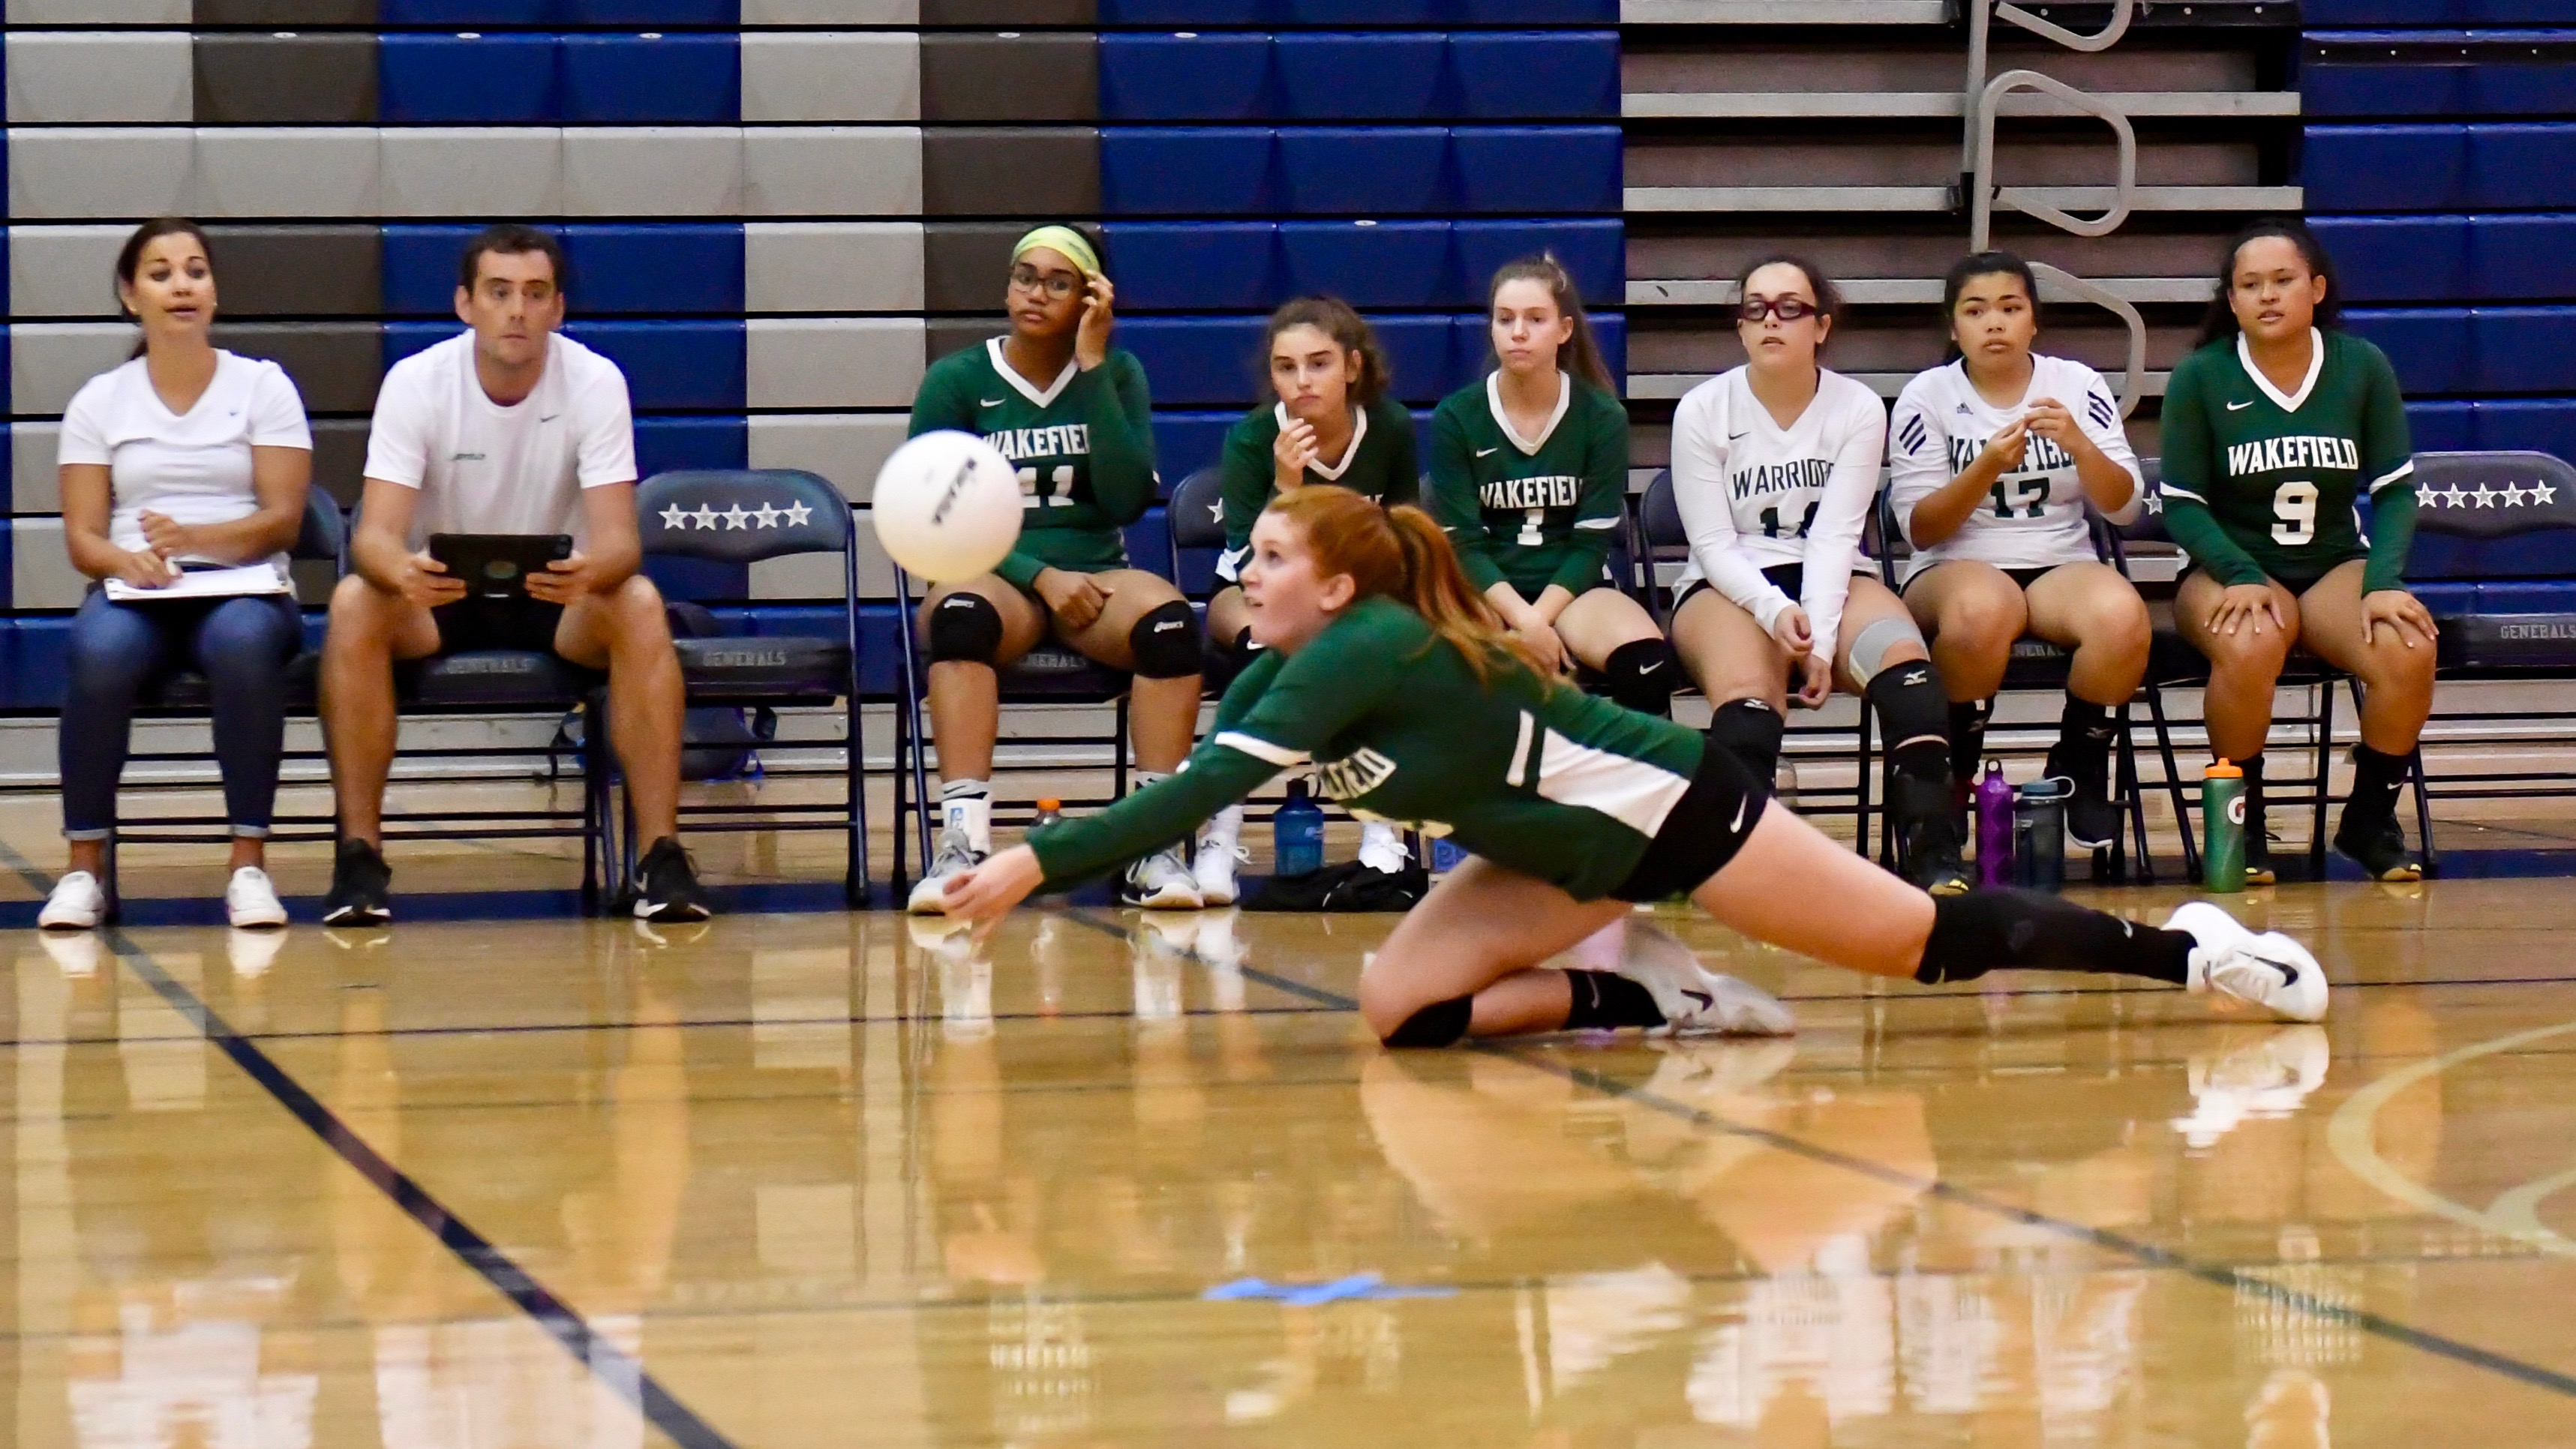 Volleyball player dives for the ball